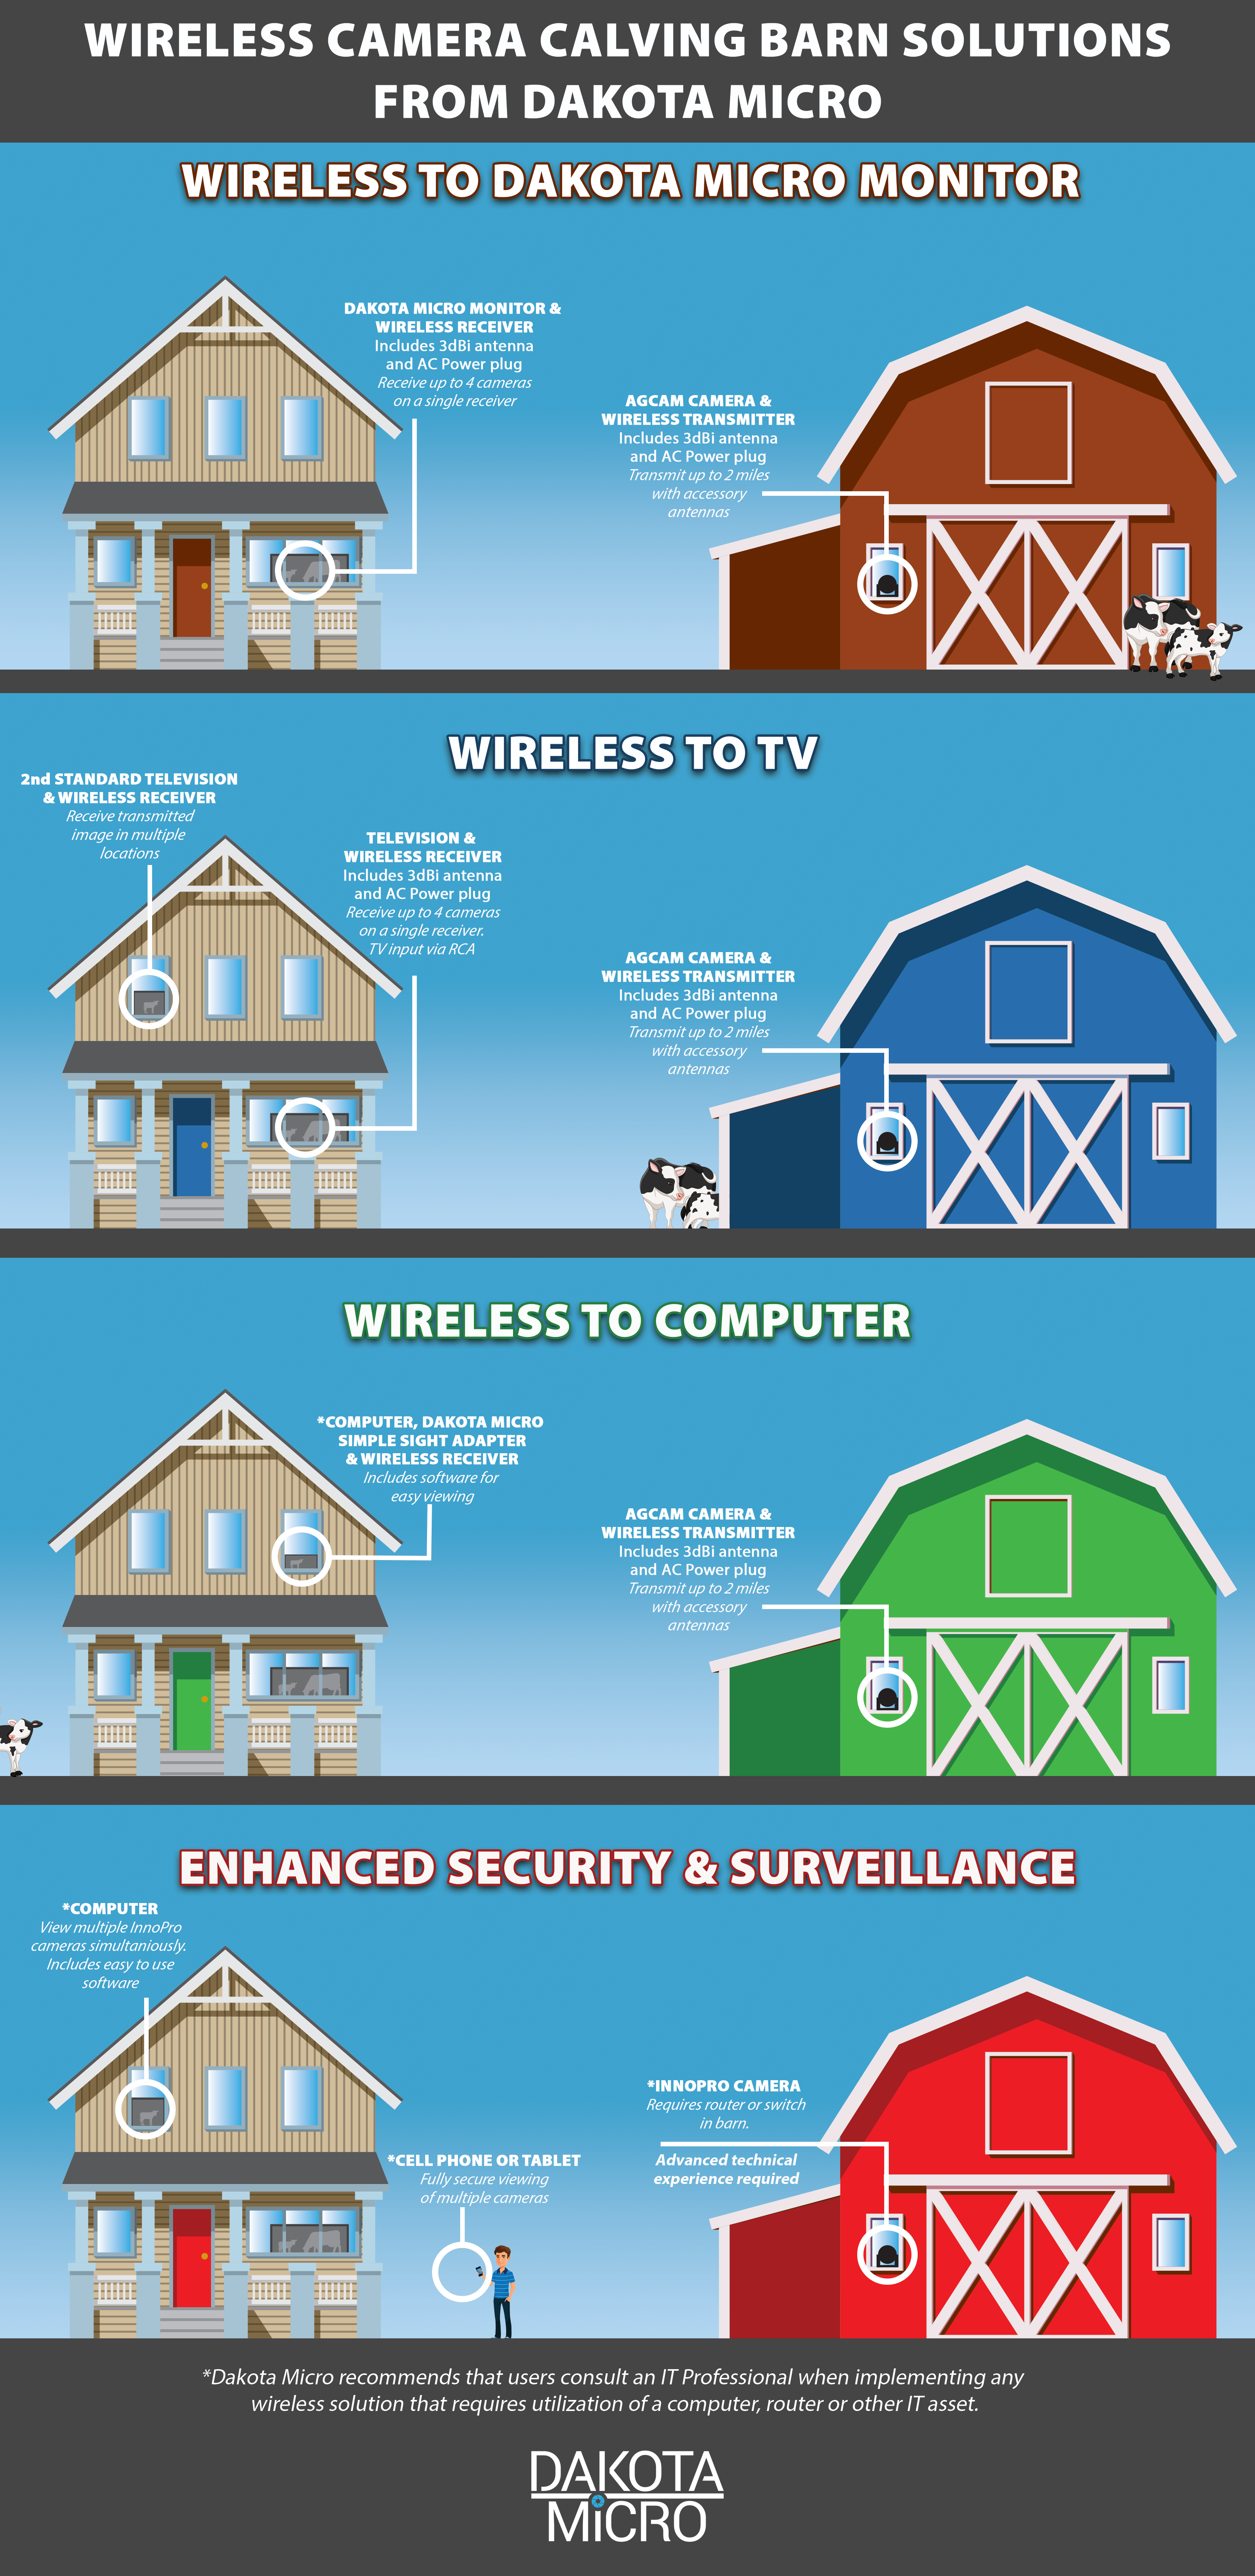 Infographic showing four different Calving Barn camera configurations: Wireless to Dakota Micro Monitor, Wireless to TV, Wireless to Computer, and Enhanced Security & Surveillance.